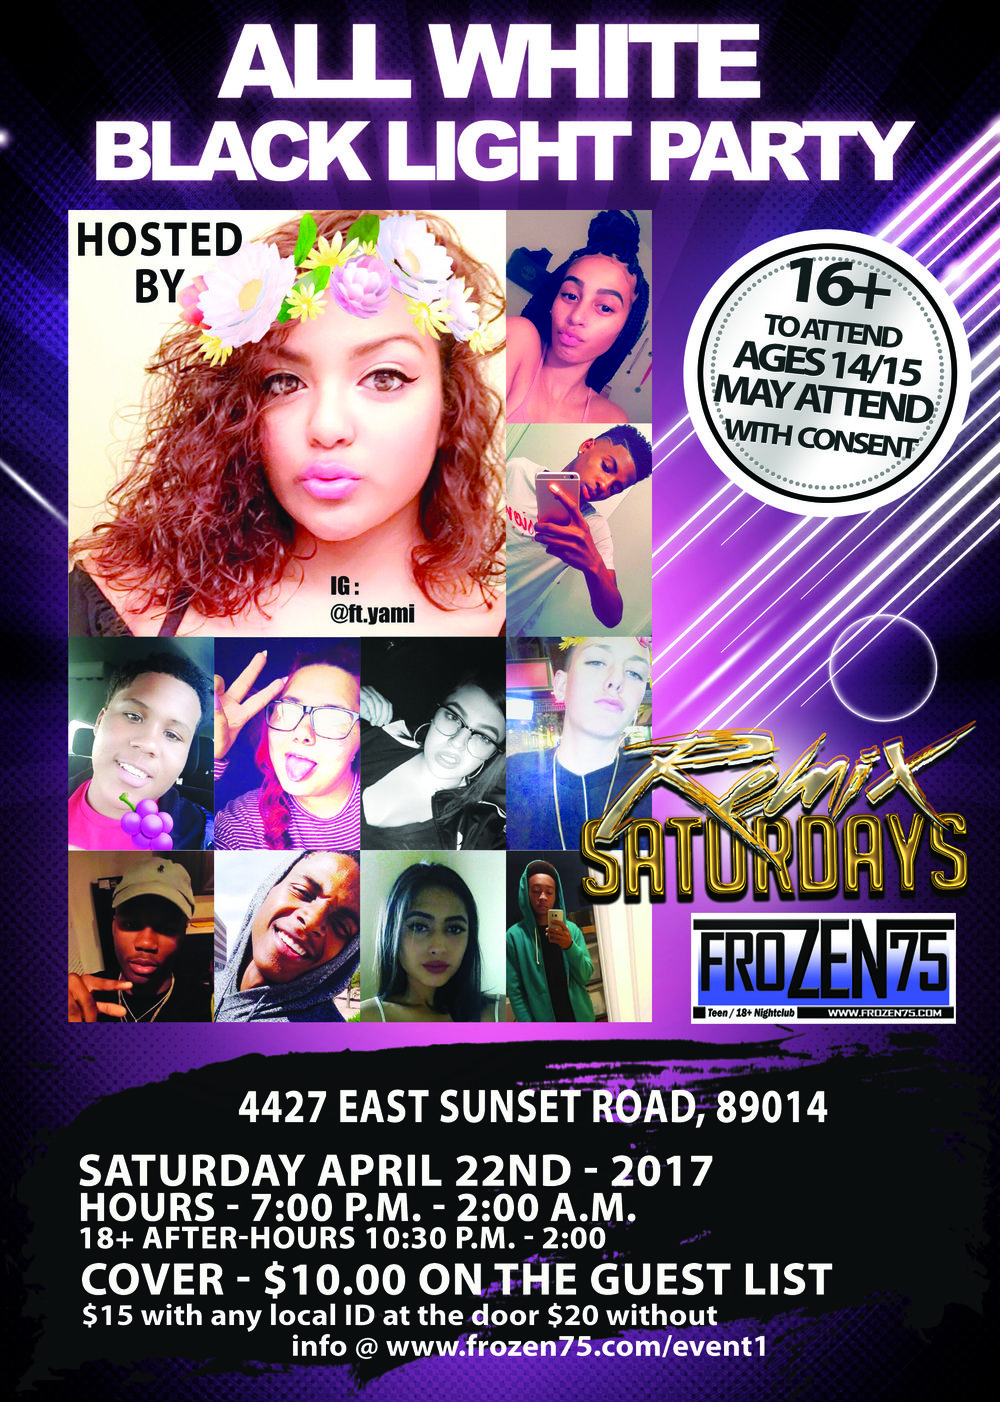 FroZEN75_REMIX SATURDAYS_All White, Black Light Partyt hosted by Yami_4-22-2017_BACK.jpg